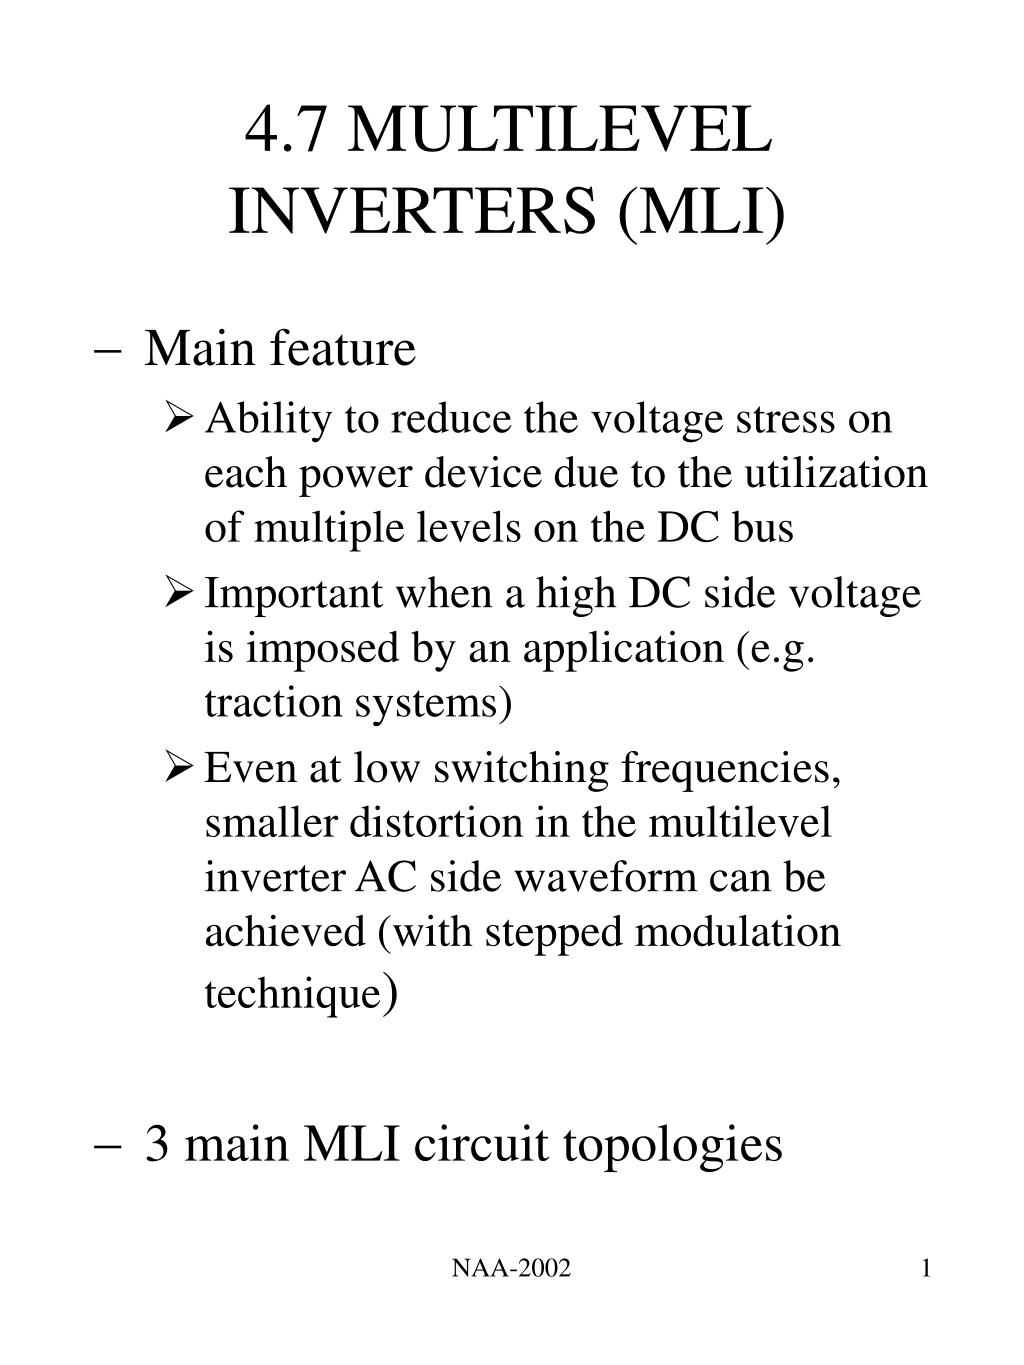 PPT - 4 7 MULTILEVEL INVERTERS (MLI) PowerPoint Presentation - ID:263225